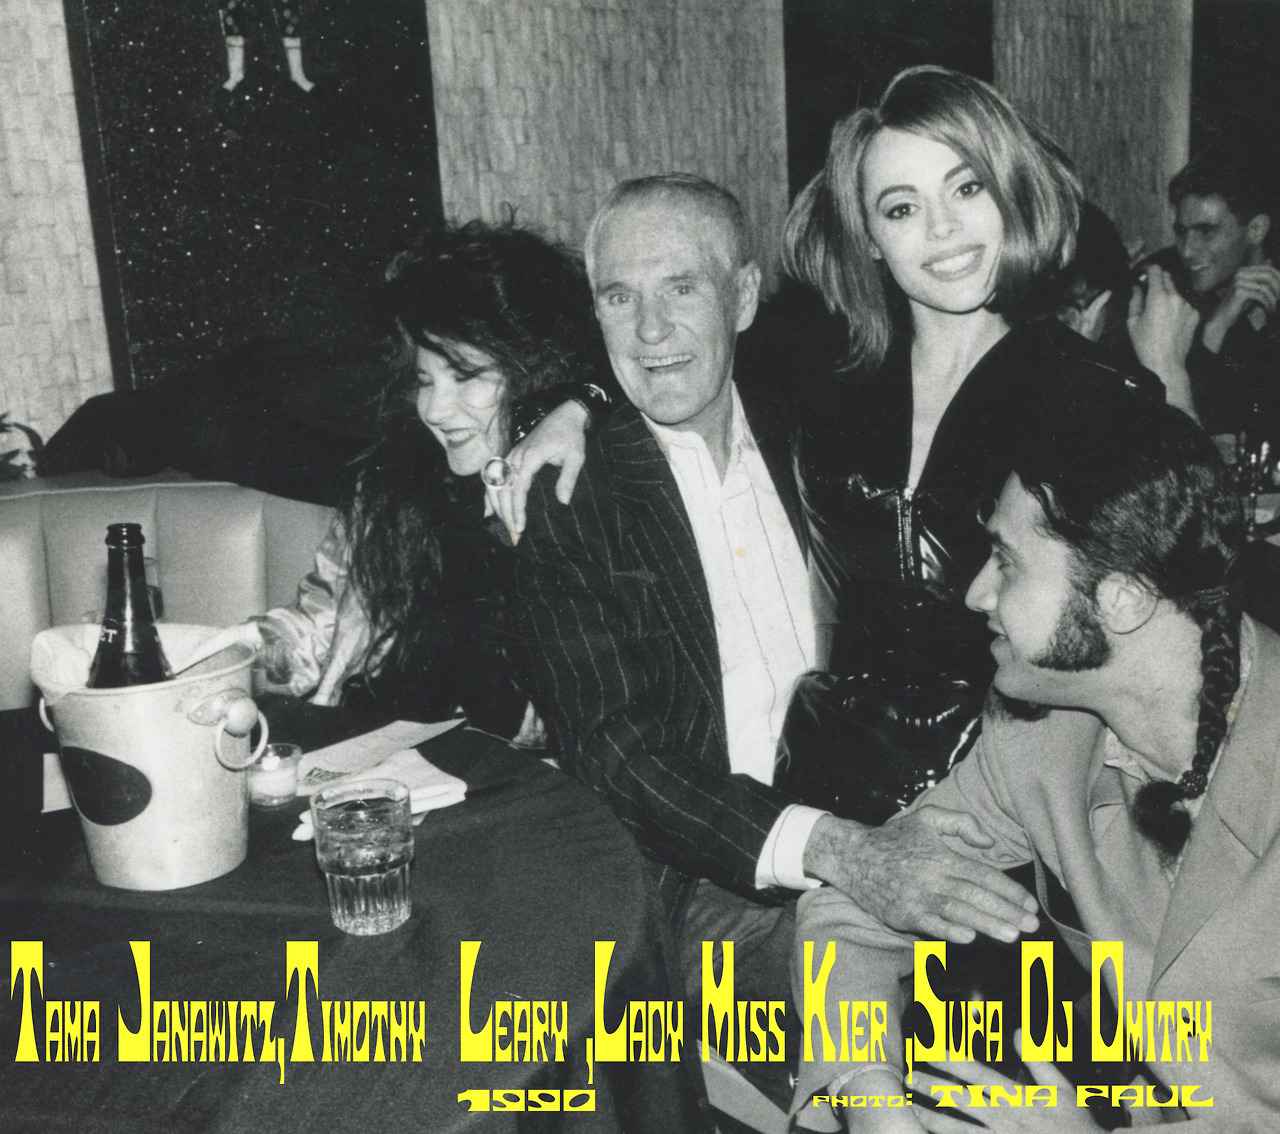 "1990!  Meeting Tim Leary was one of the HIGH-lites of the early 90's for me. We sampled him for ""dewdrops in the garden"" . I went to see a play with him about his time in jail with a cell next to Charles Manson-Lady miss Kier  https://www.facebook.com/pages/miss-Lady-Kier/296808489716?sk=wall"